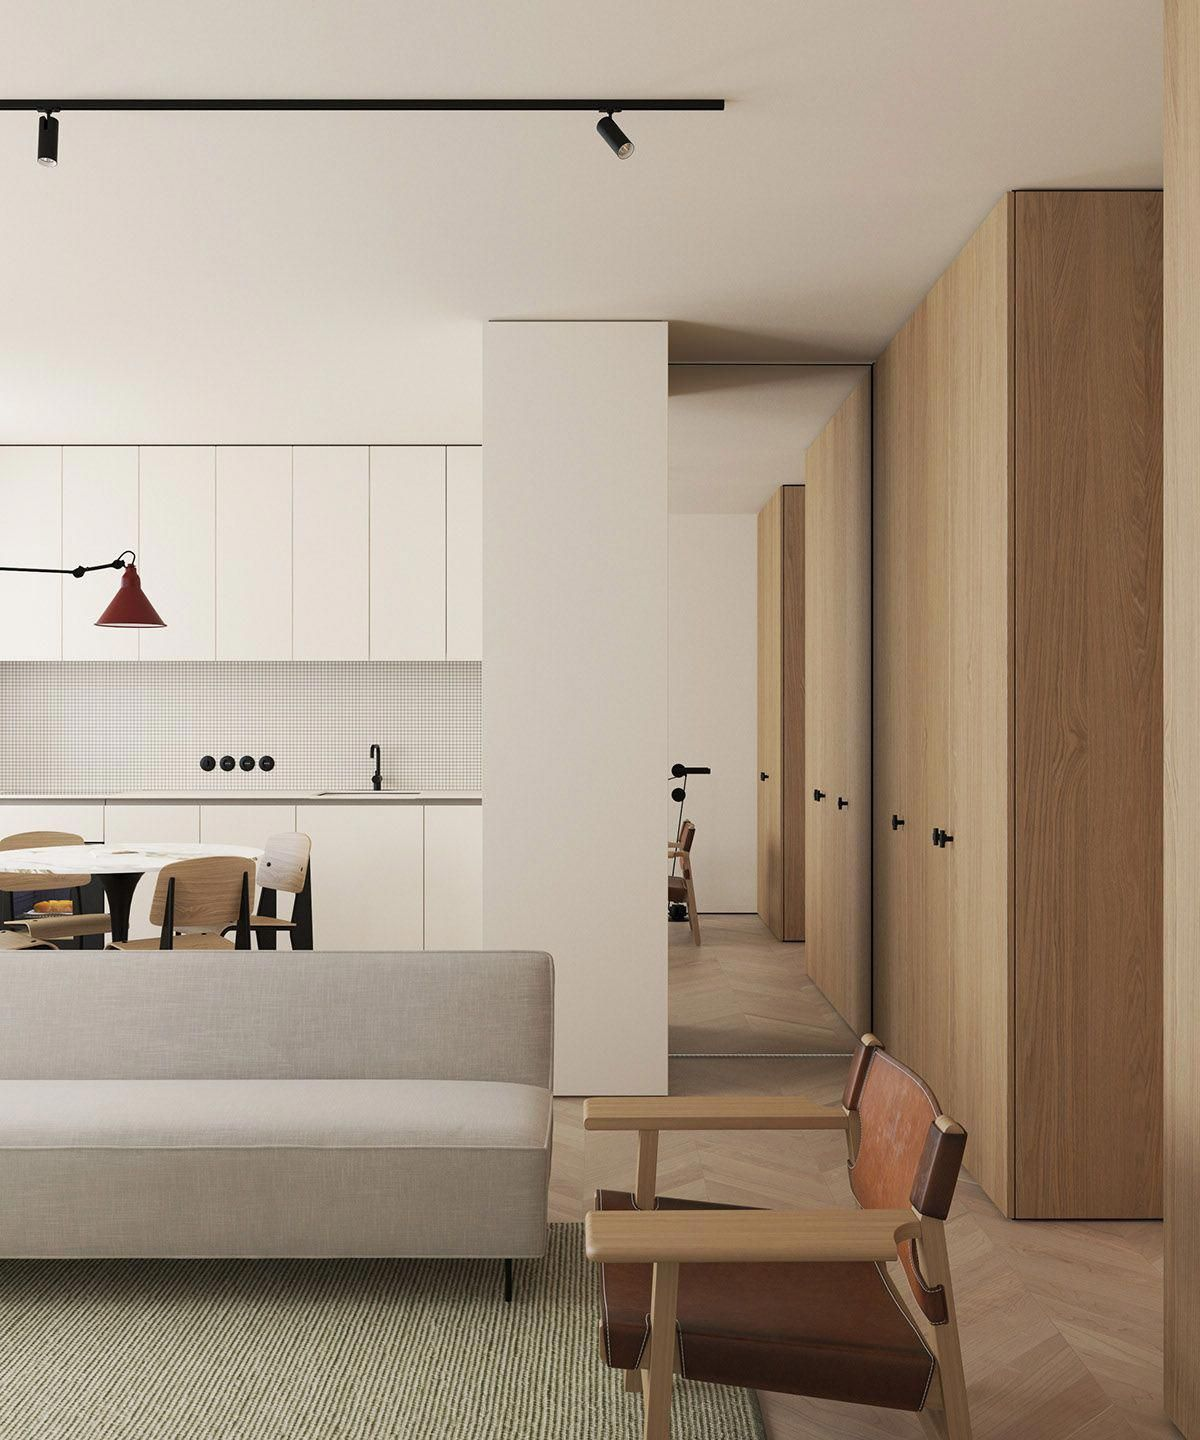 Contemporary Interior Design Ideas Apartamento Contemporaneo Interior Minimalista Diseno Moderno